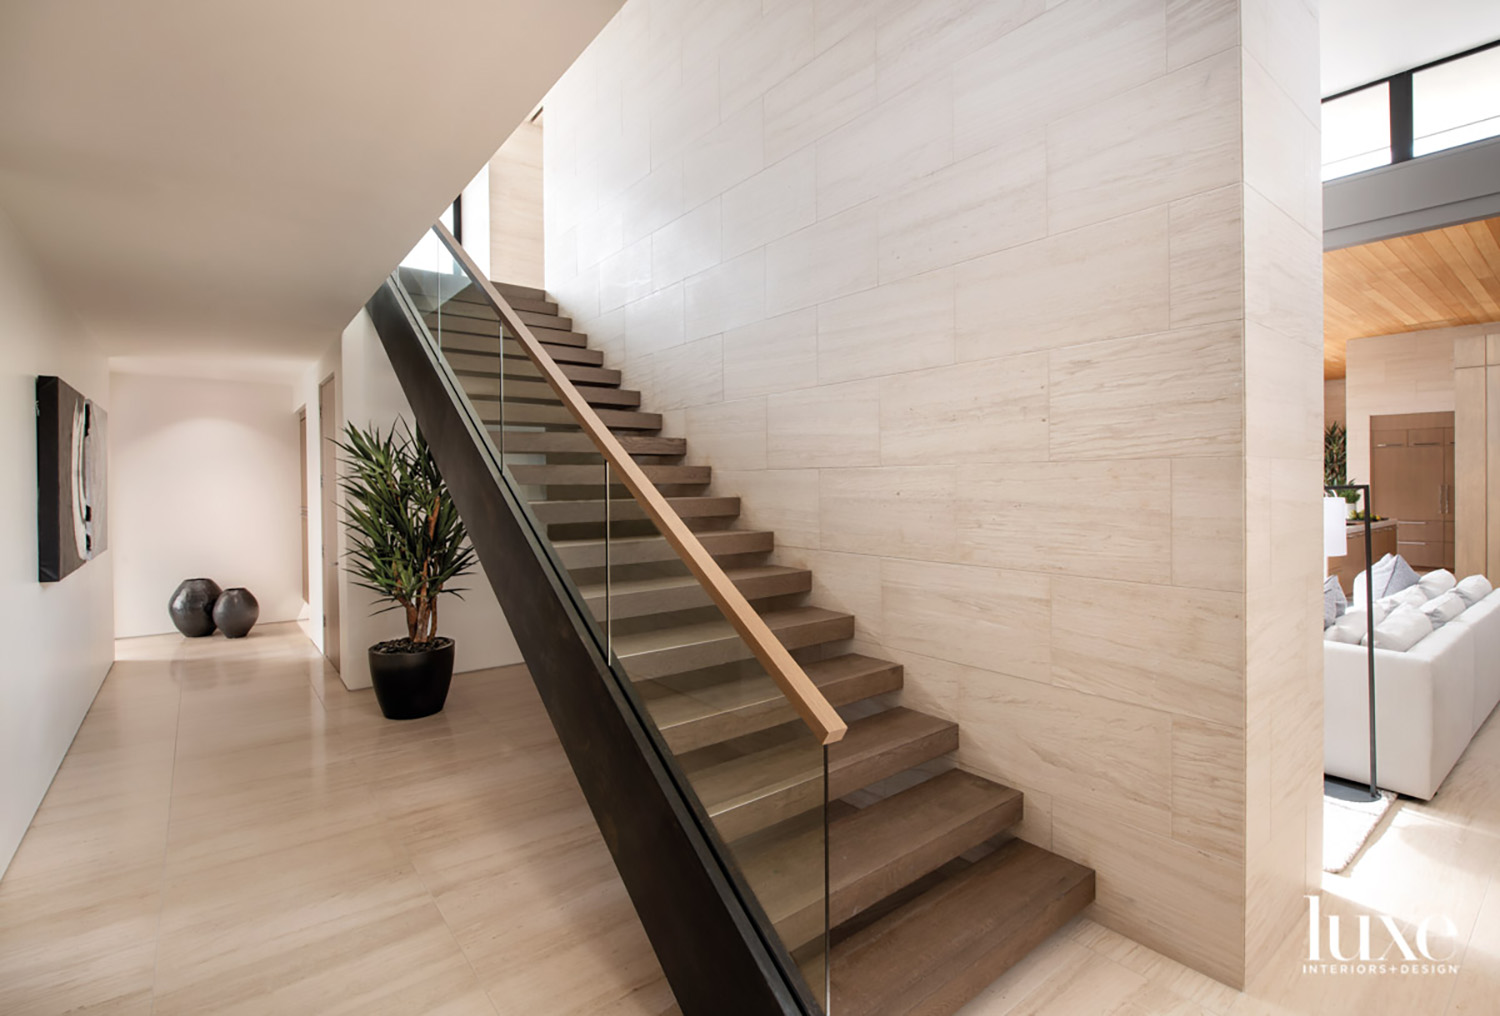 A glass-steel-and-wood staircase leads to...